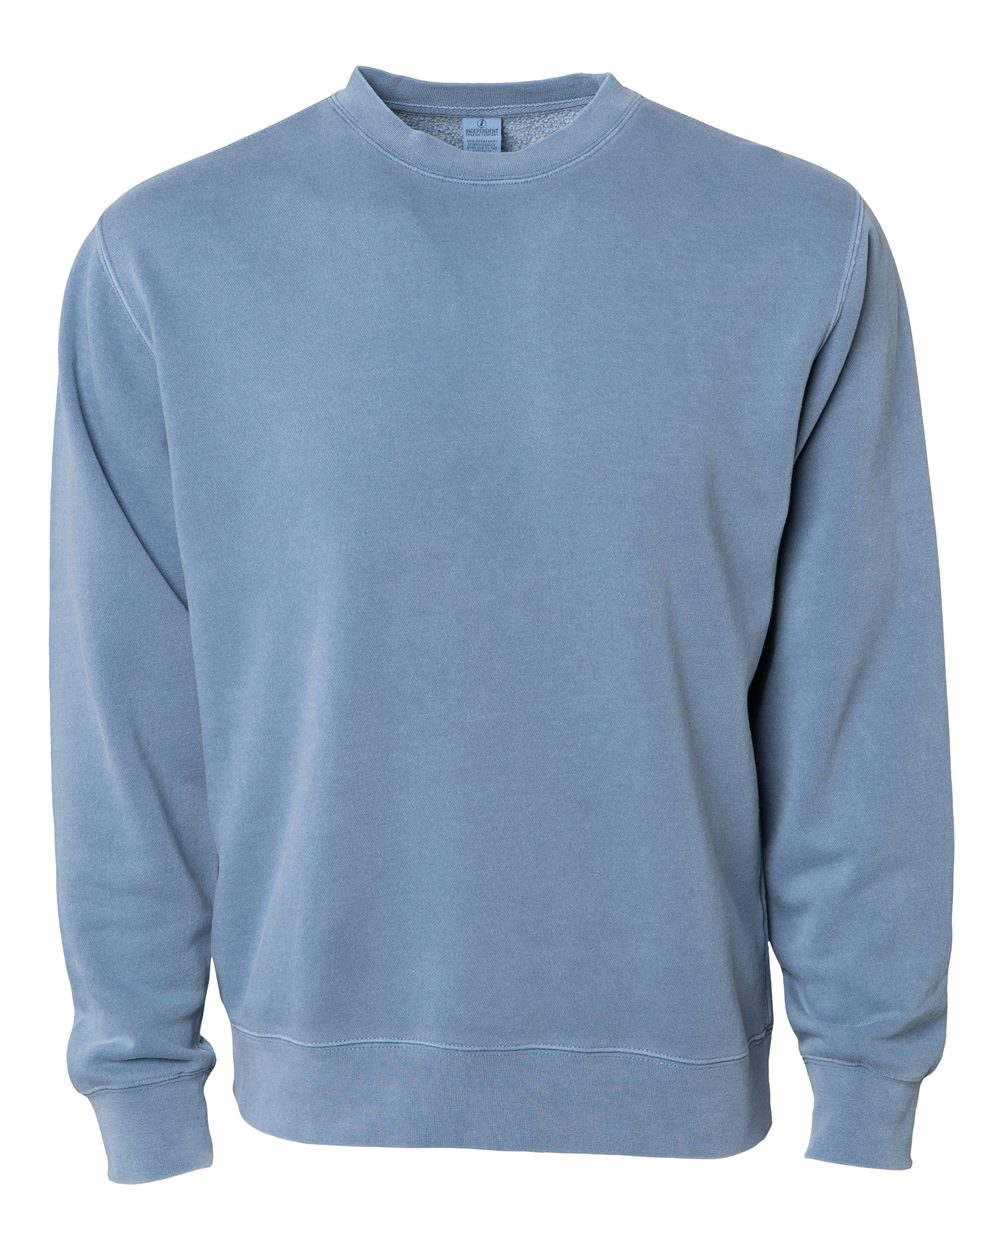 Independent Trading Co. PRM3500 - Unisex Pigment Dyed ...